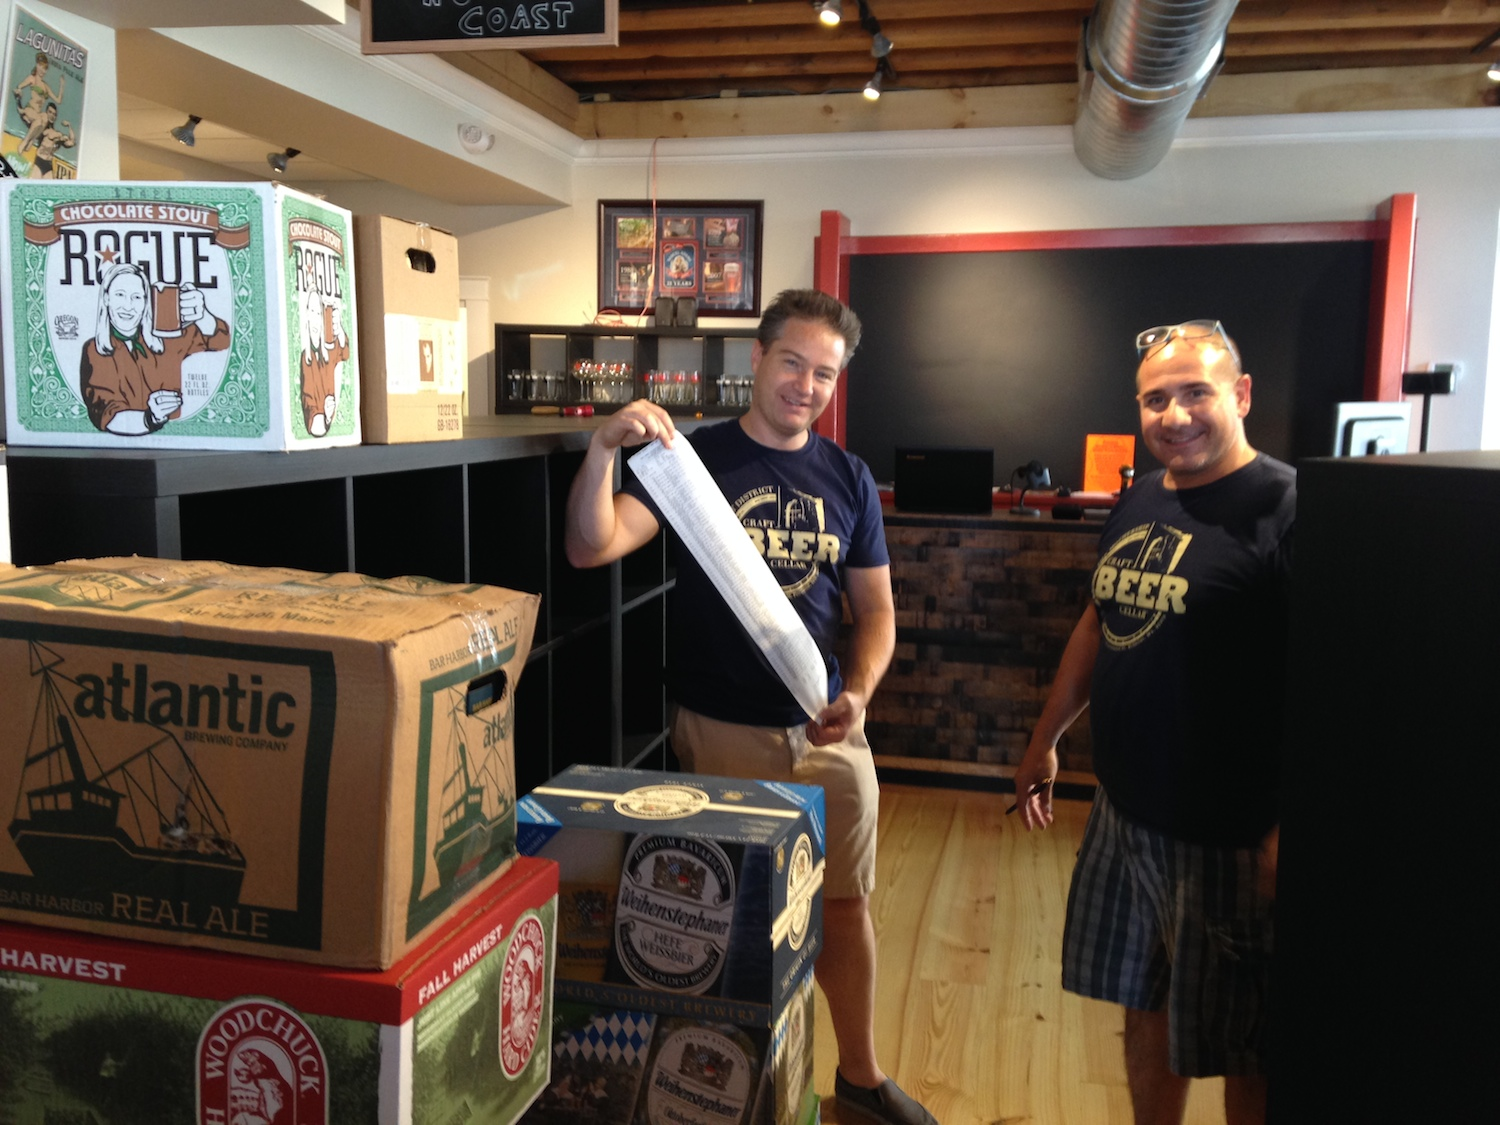 First shipment of beer at CBC Portland.